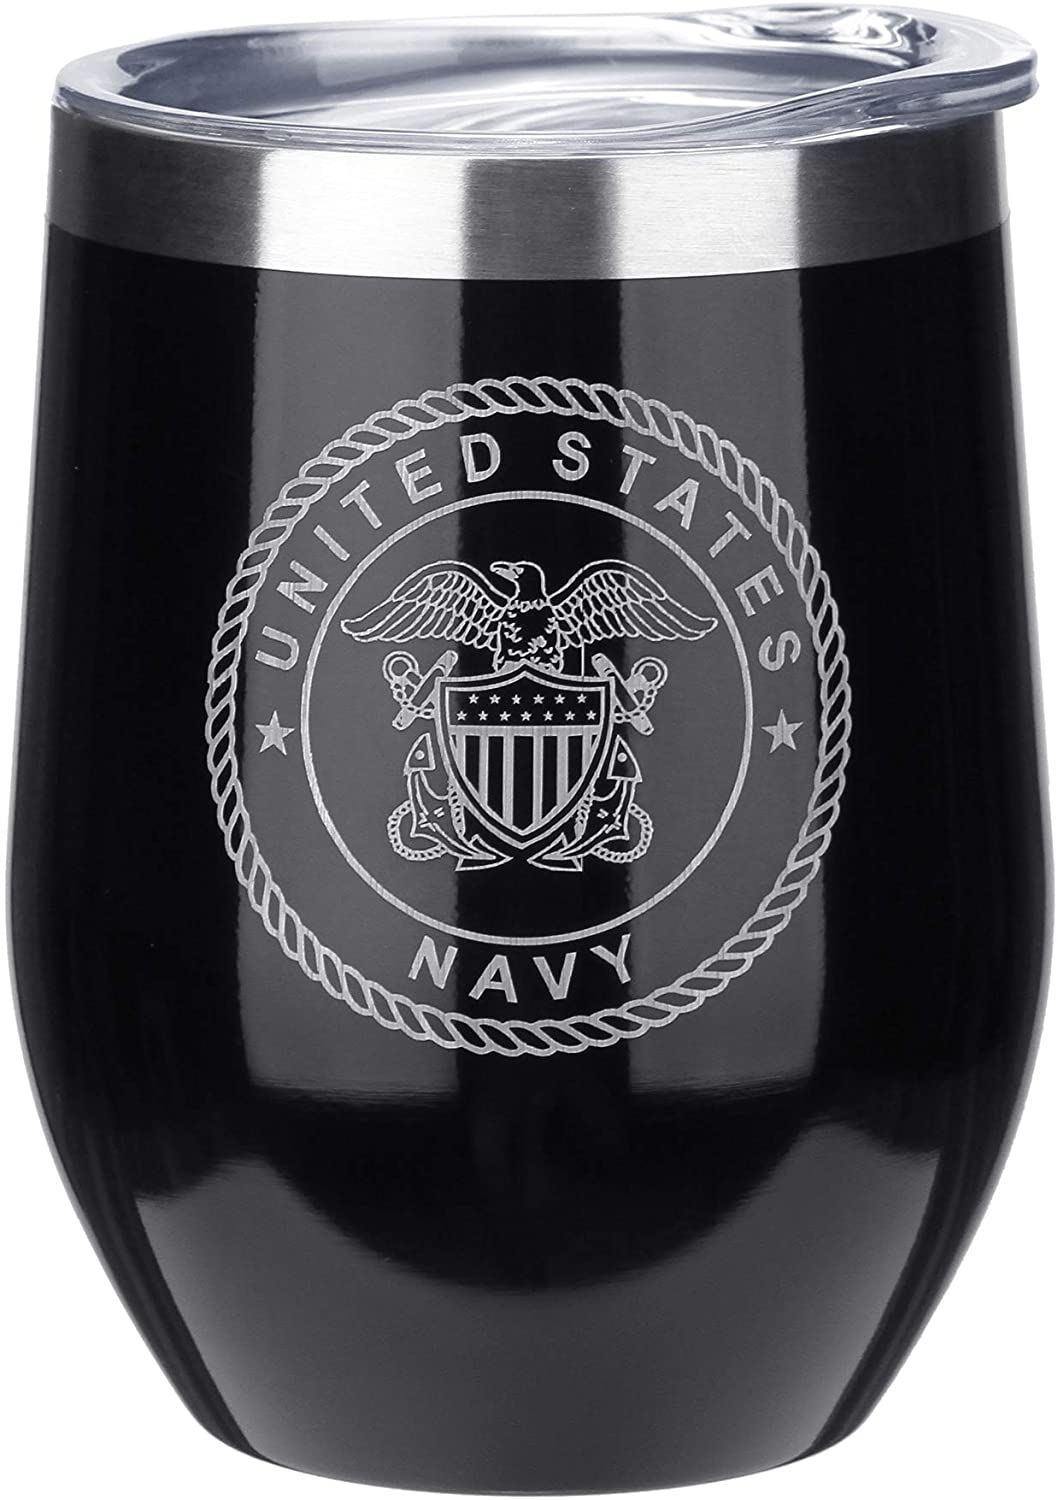 FAYERXL Personalized Stainless Wine Tumblers Engraved Wine Glass Cup for Marine Corps/Air Force/Army/Navy/Coast Guard/Police Person (Navy)